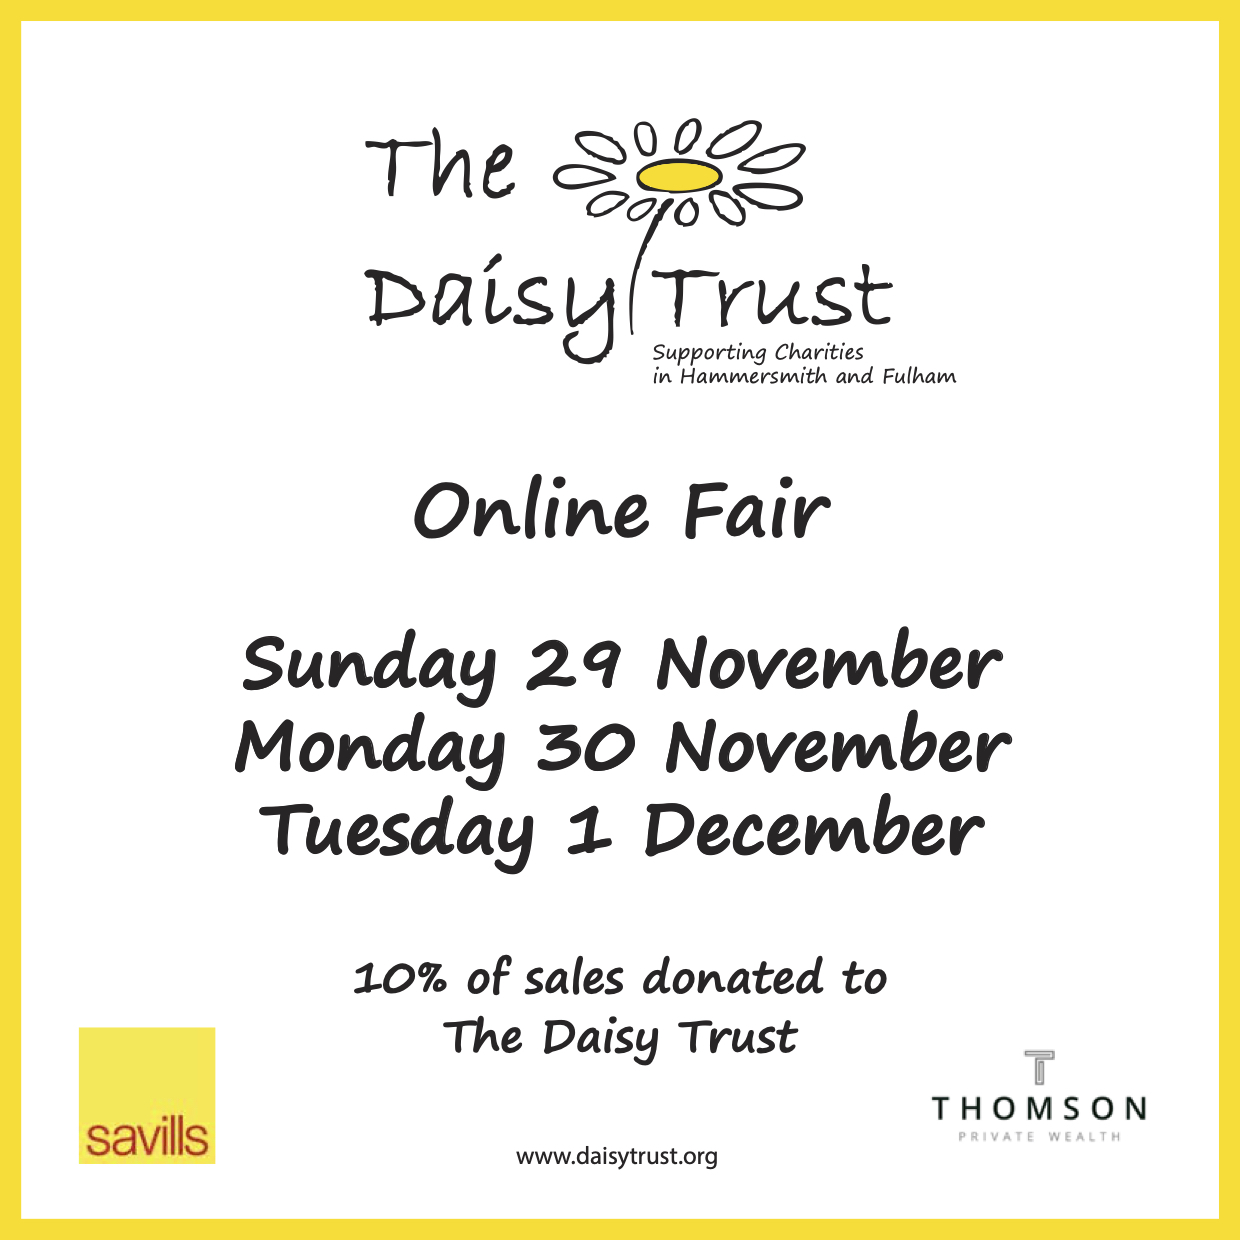 The Daisy Trust